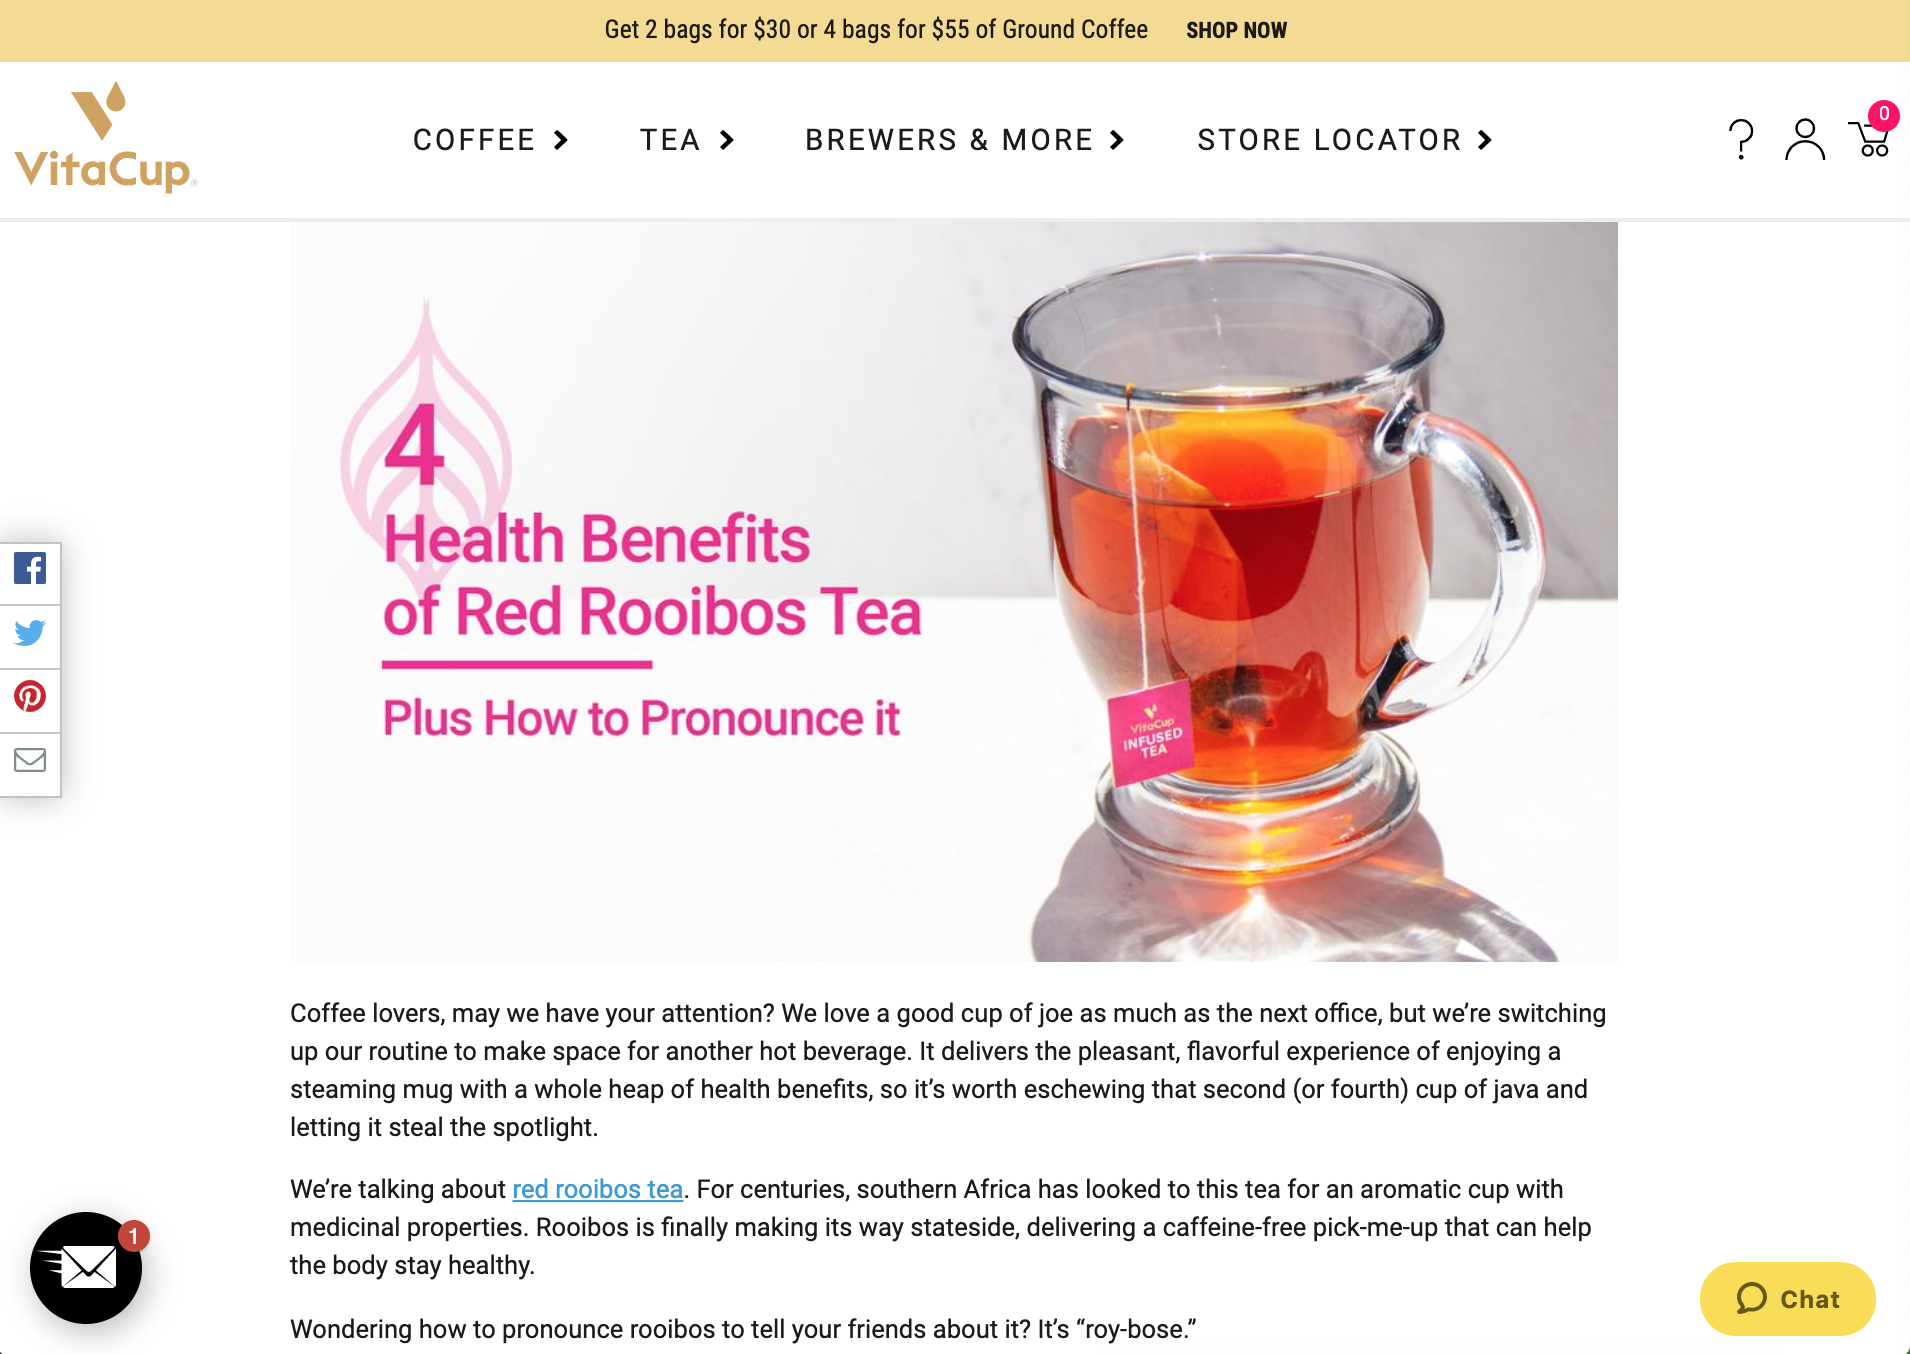 BLOGS: VitaCup - VitaCup makes coffee and tea infused with vitamins and other key ingredients to help you feel your best. Carpe diem with your morning beverage, you know? Their blogs focus on educating readers on their game-changing ingredients. You can see blogs I wrote on the health benefits of ingredients like rooibos tea and adaptogens.